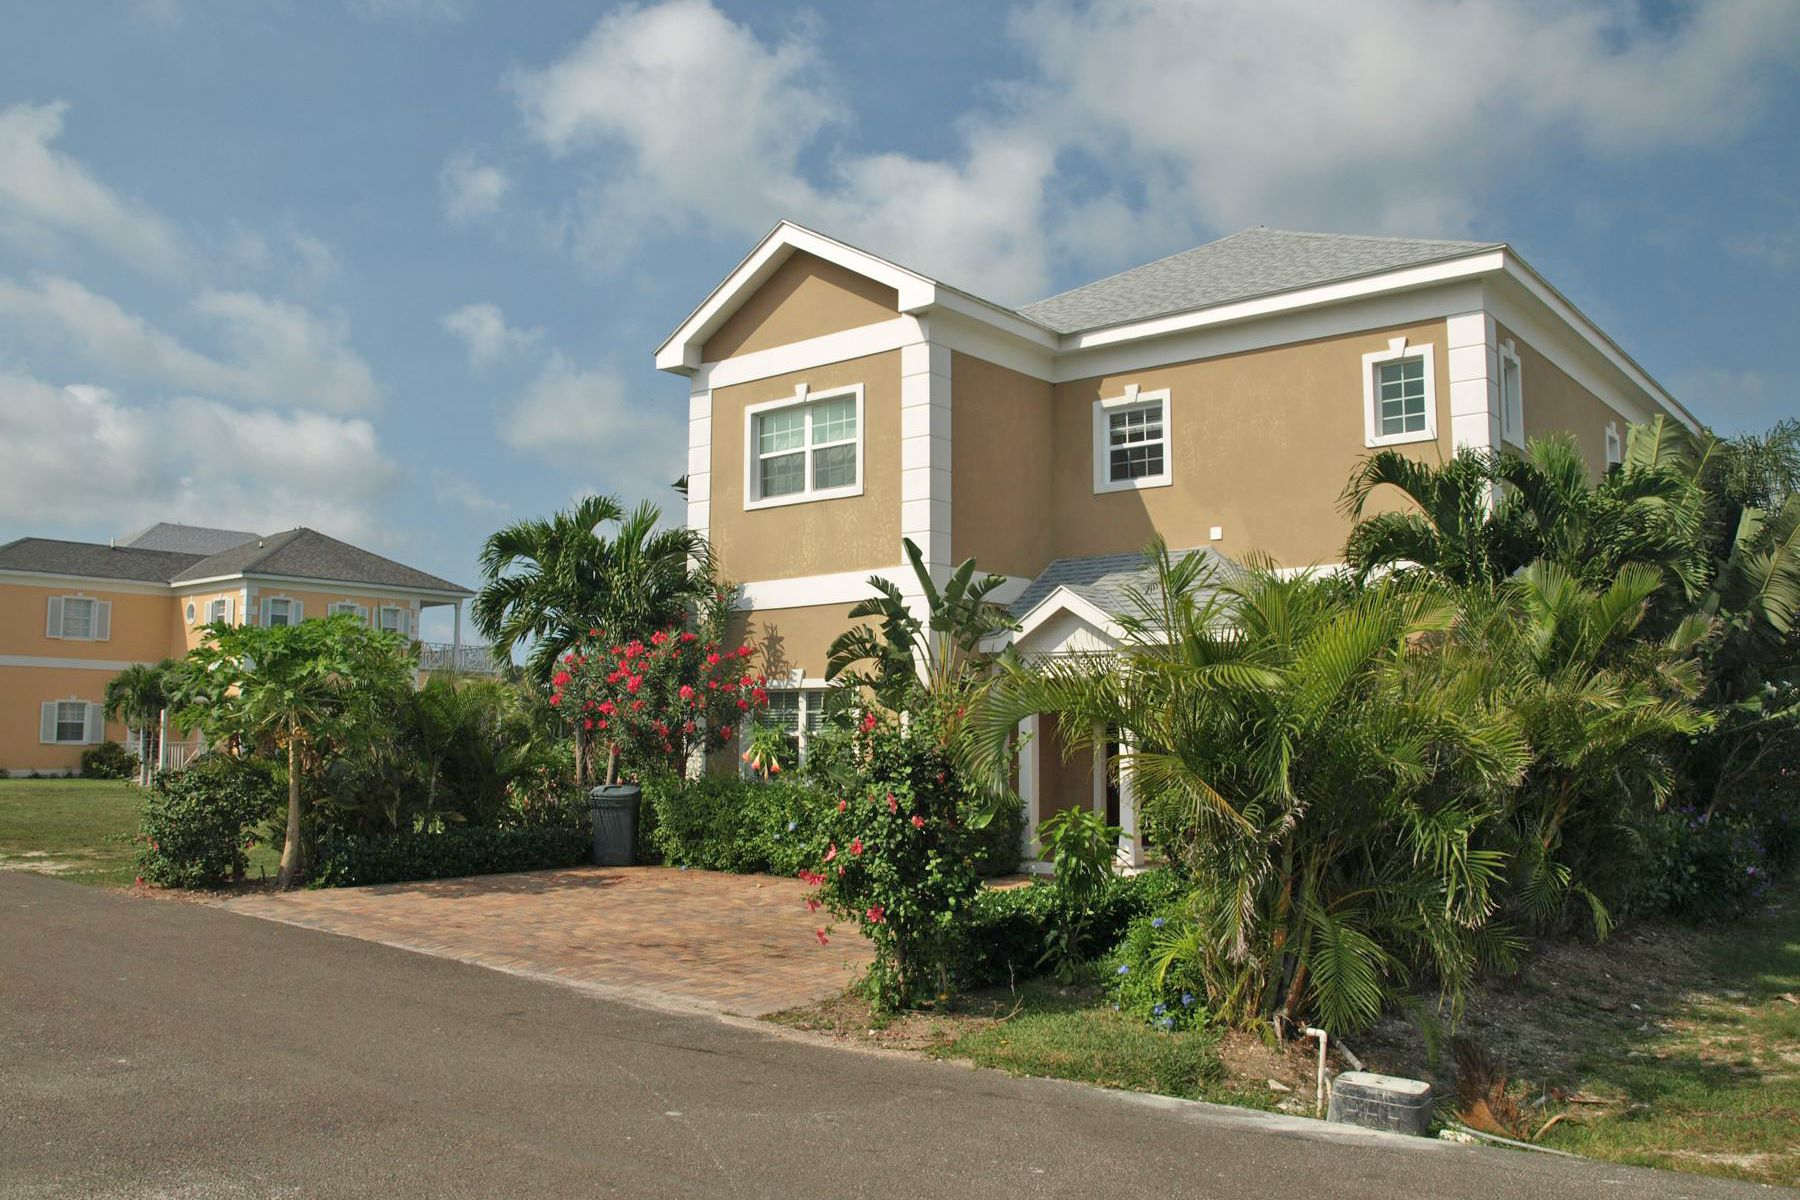 Single Family Home for Sale at Royal Palm Cay #7, Sandyport Sandyport, Cable Beach, Nassau And Paradise Island Bahamas